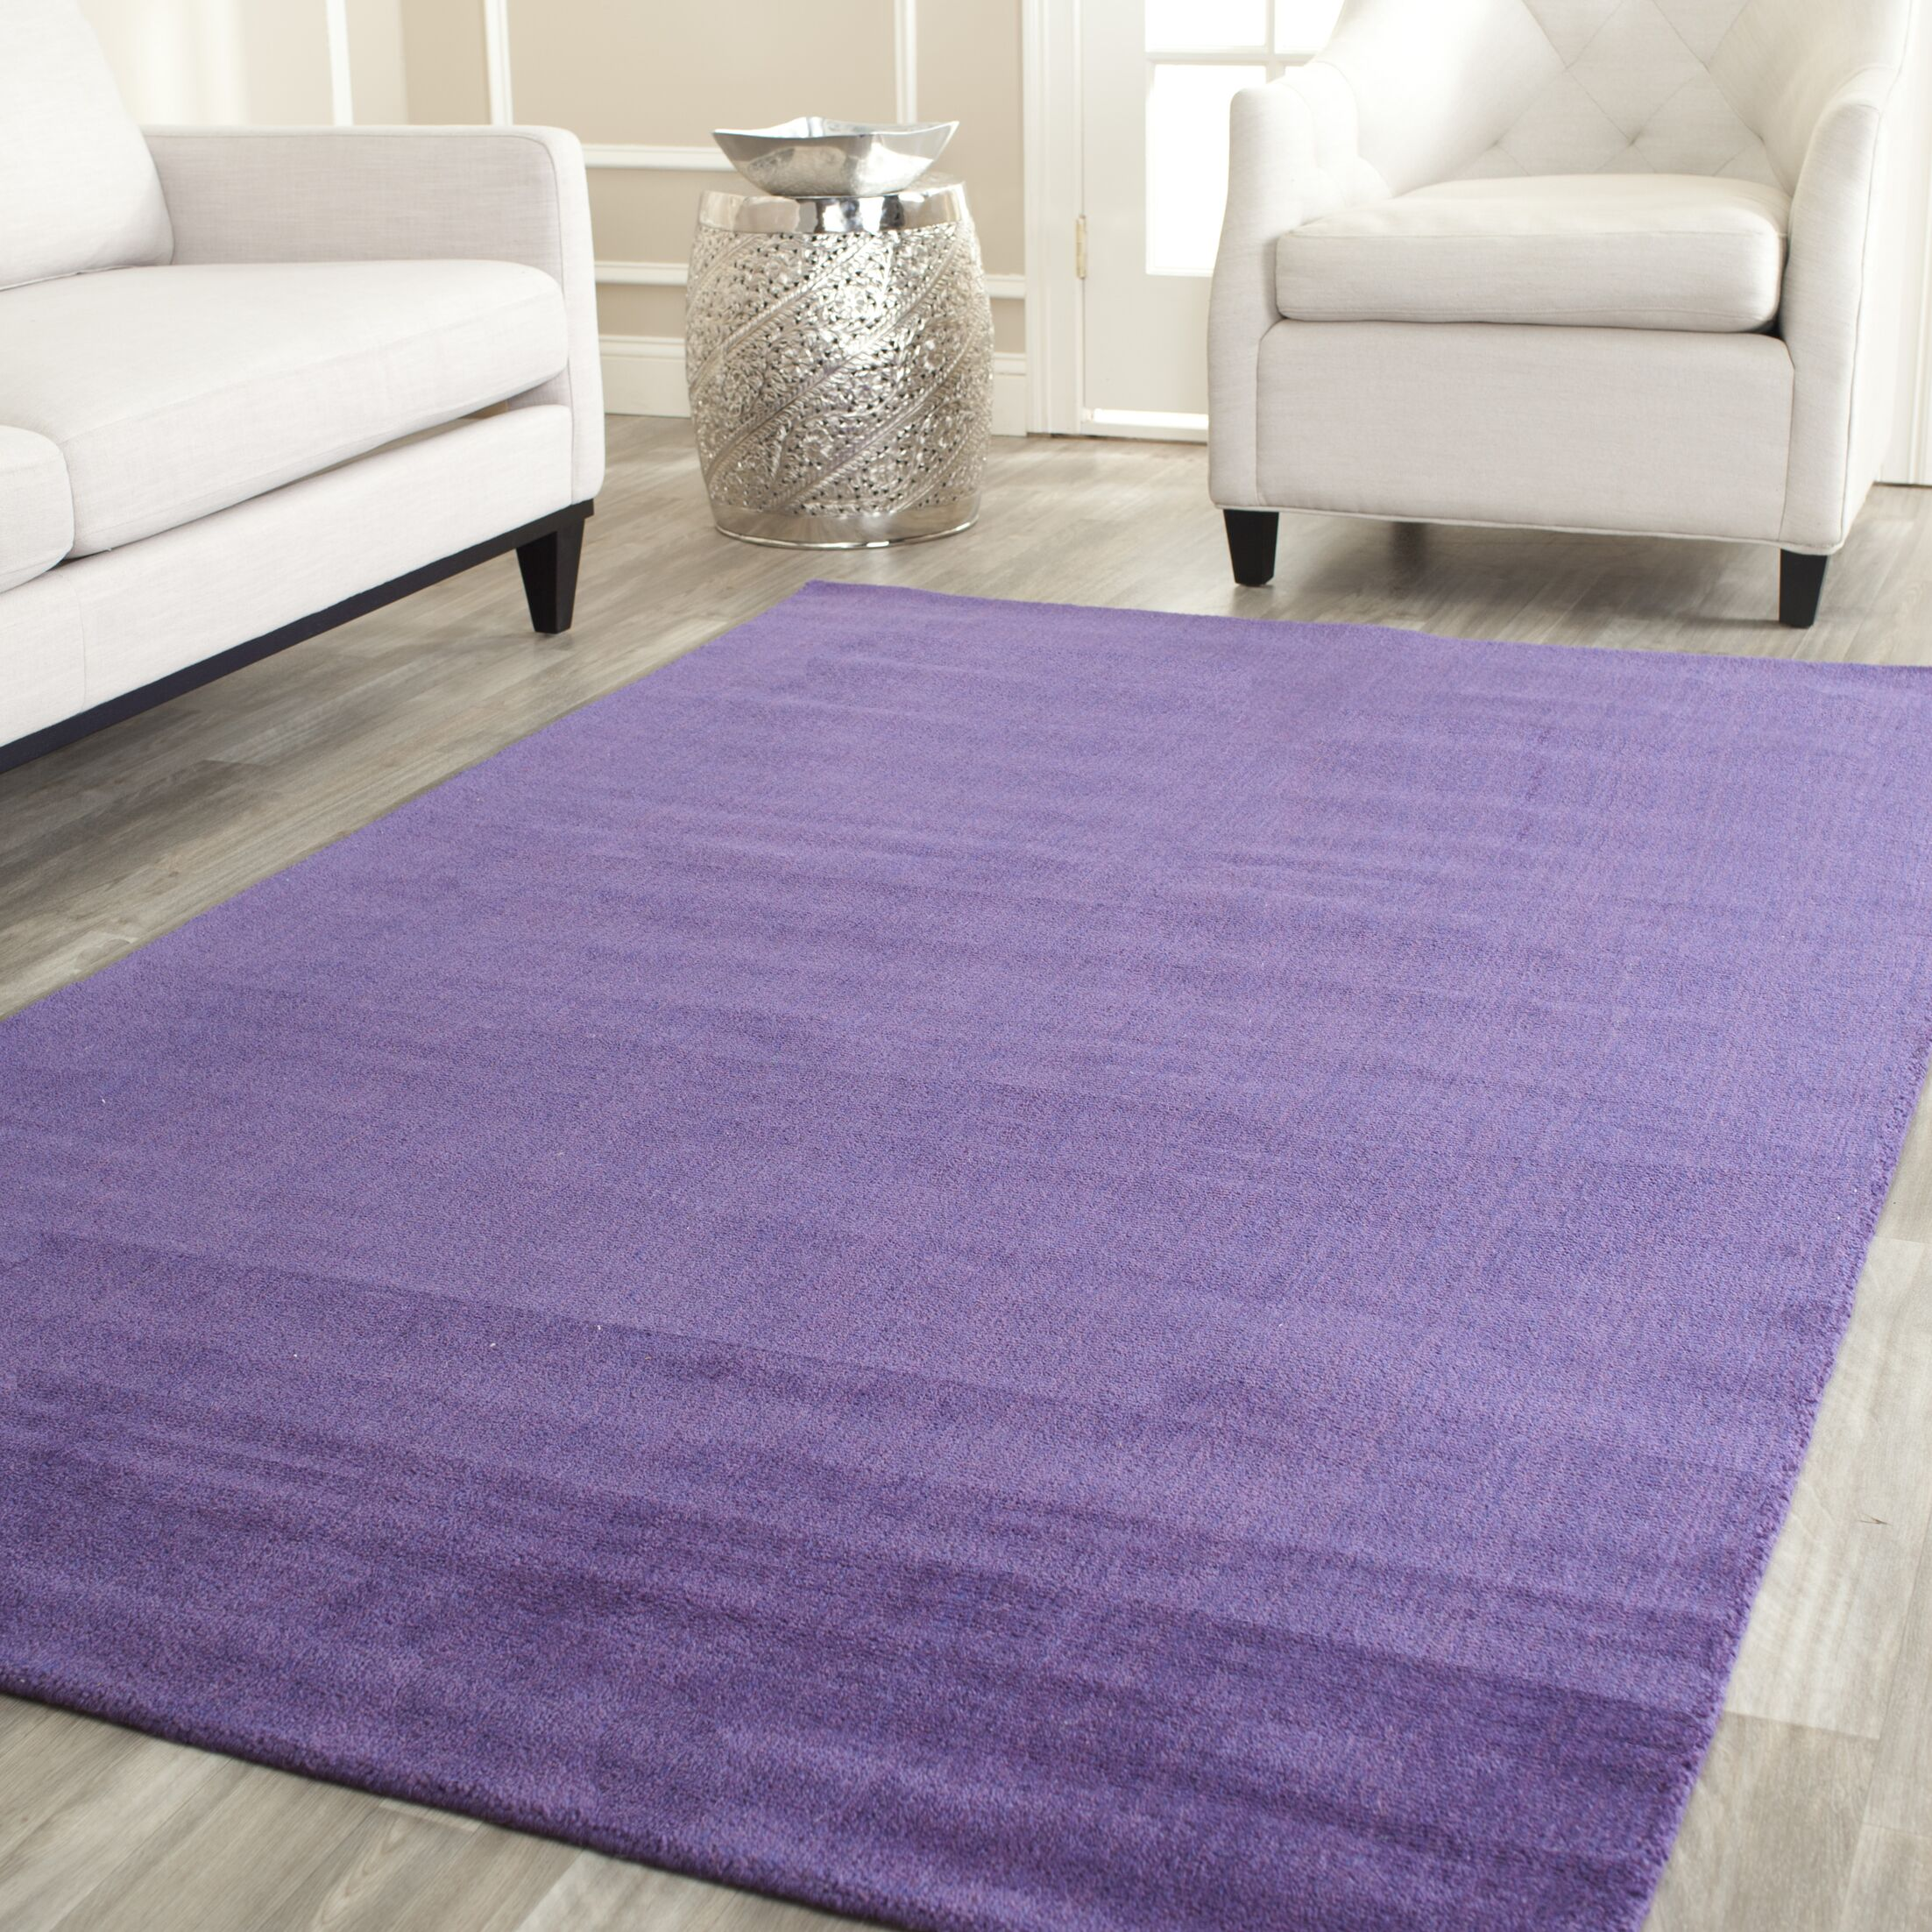 Bargo Purple Area Rug Rug Size: Rectangle 5' x 8'